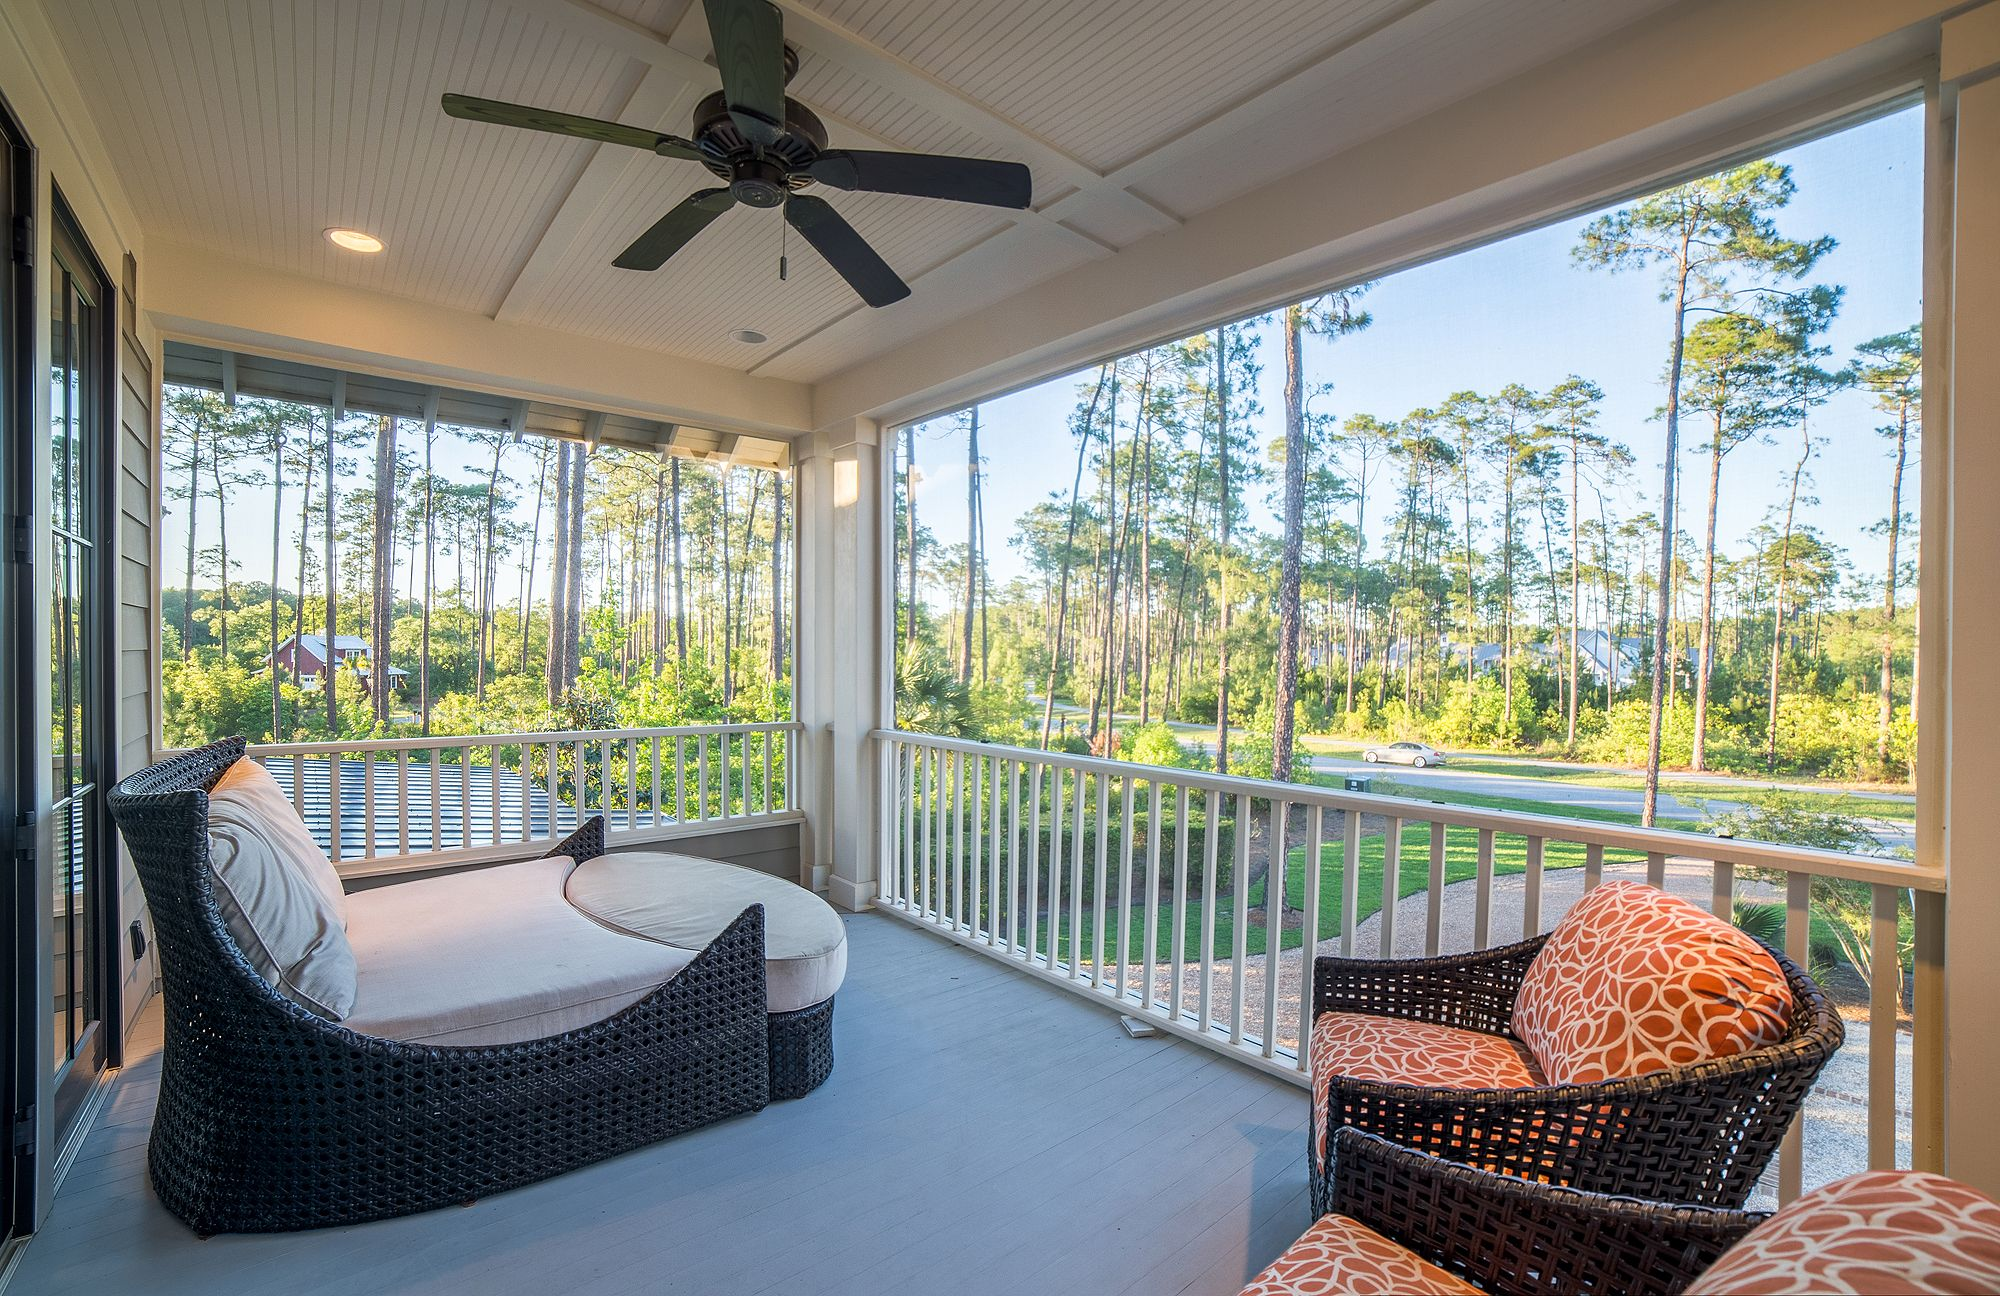 Outdoor Seating | Outdoor Decor | Outdoor Living | Luxury Real Estate  Bluffton, South Carolina